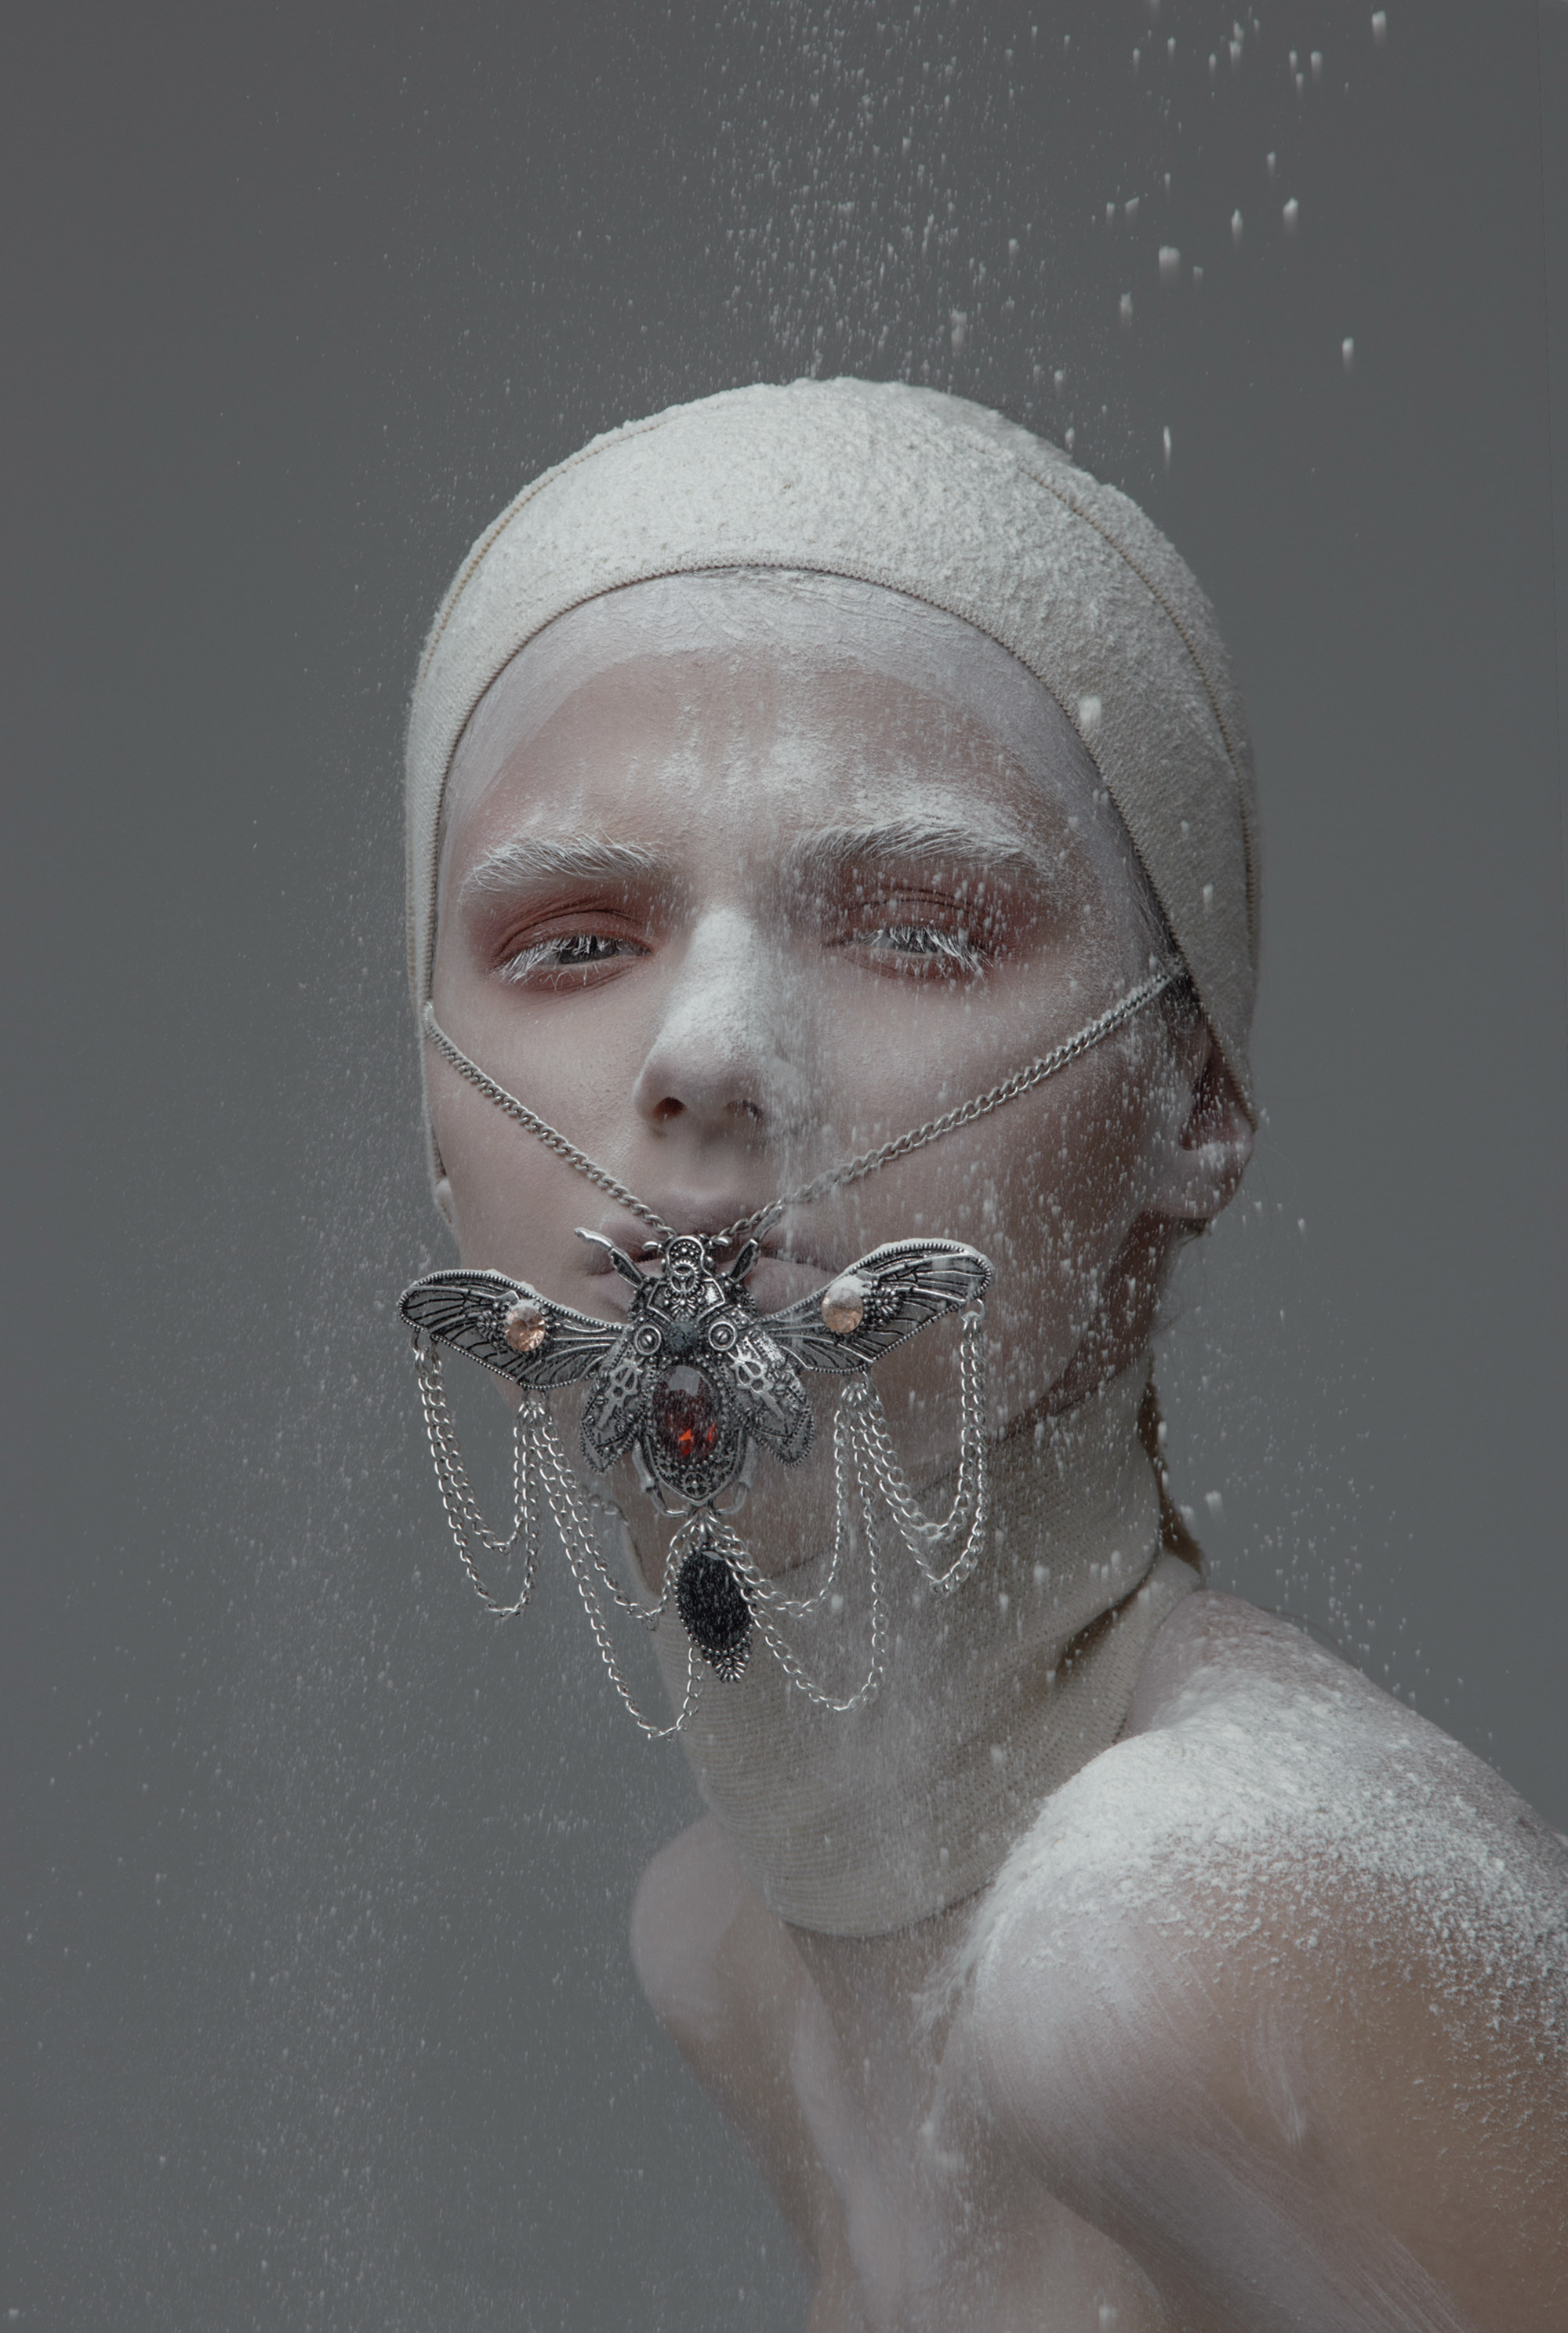 Ilona D. Veresk - The Mist - jewelry